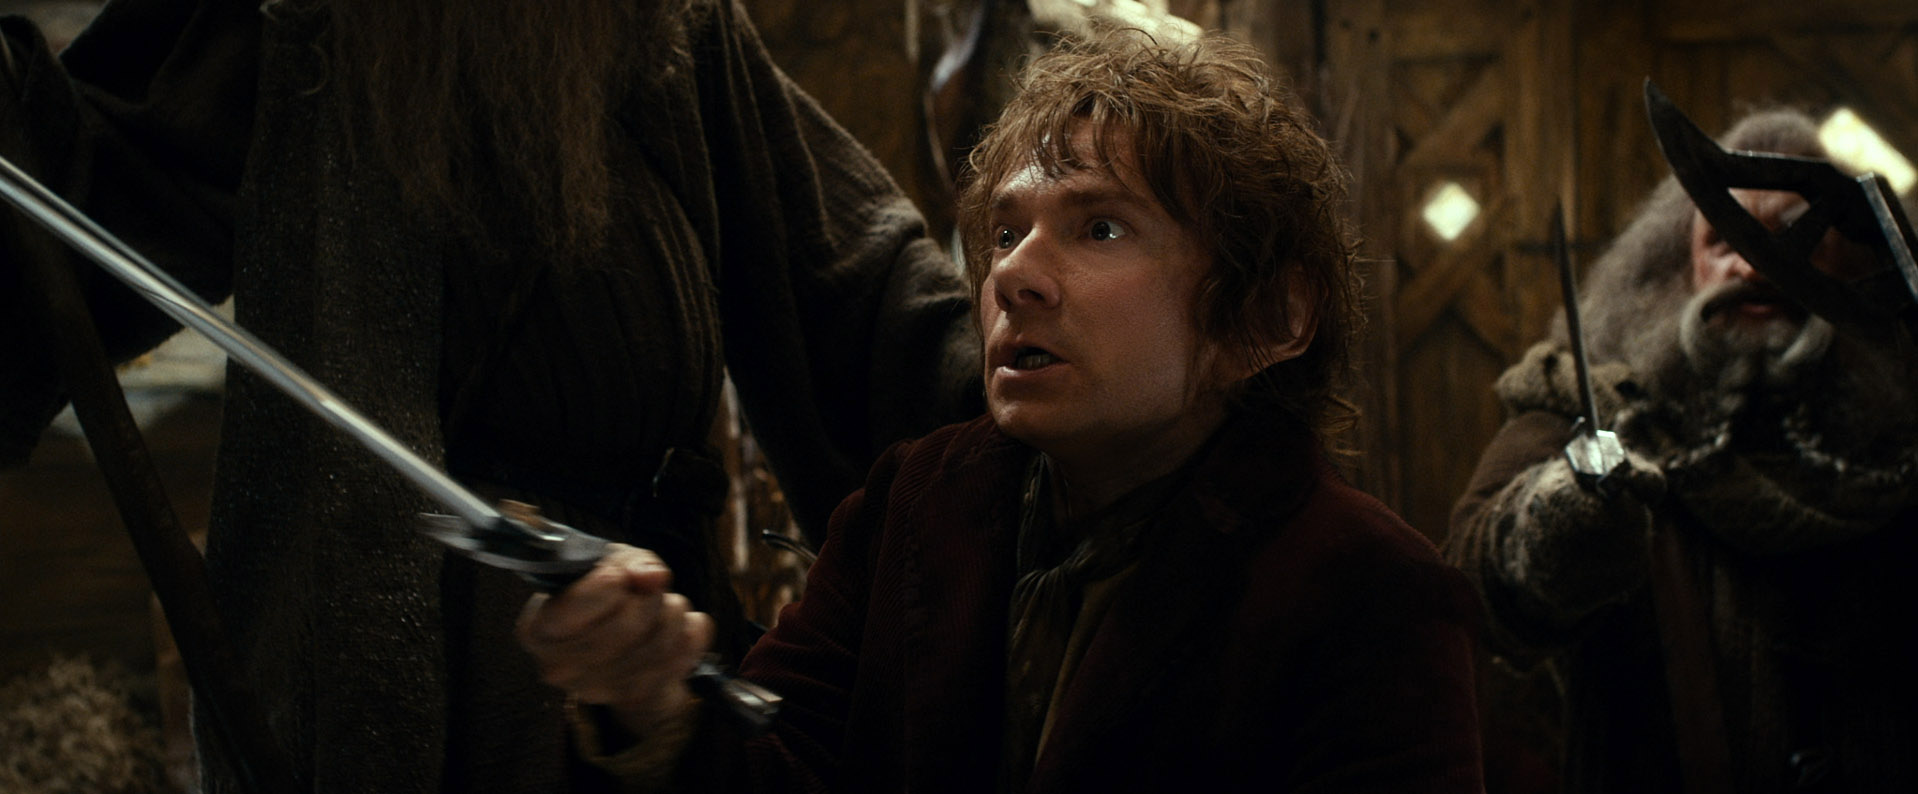 hobbit desolation smaug bilbo The Hobbit: The Desolation Of Smaug Gallery